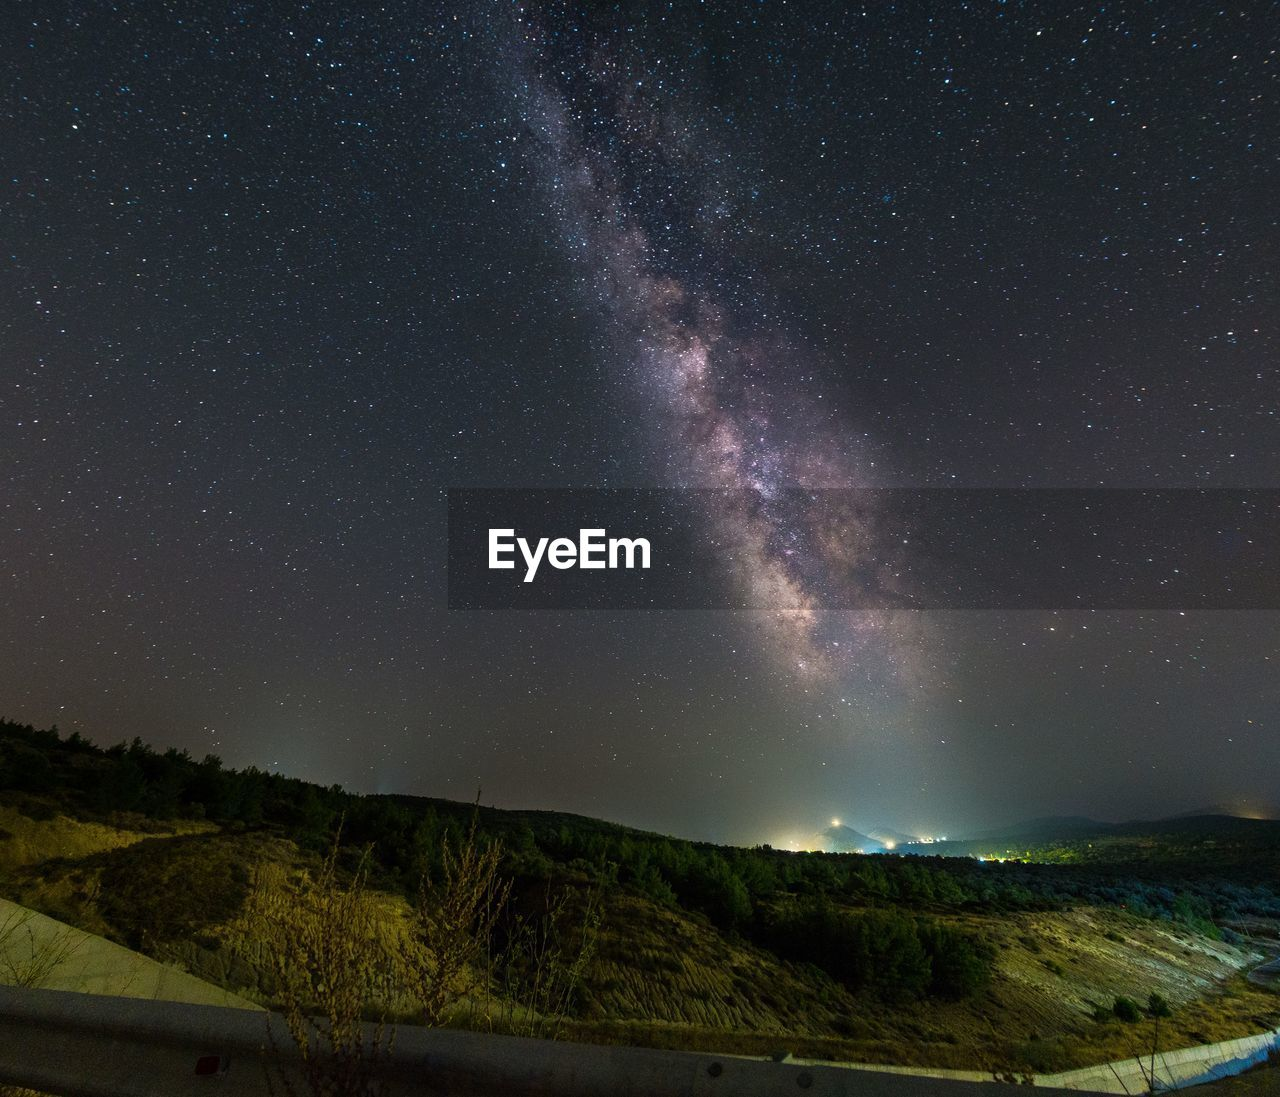 night, scenics - nature, astronomy, beauty in nature, star - space, sky, space, tranquil scene, tranquility, galaxy, nature, star, mountain, star field, no people, milky way, environment, landscape, non-urban scene, idyllic, outdoors, space and astronomy